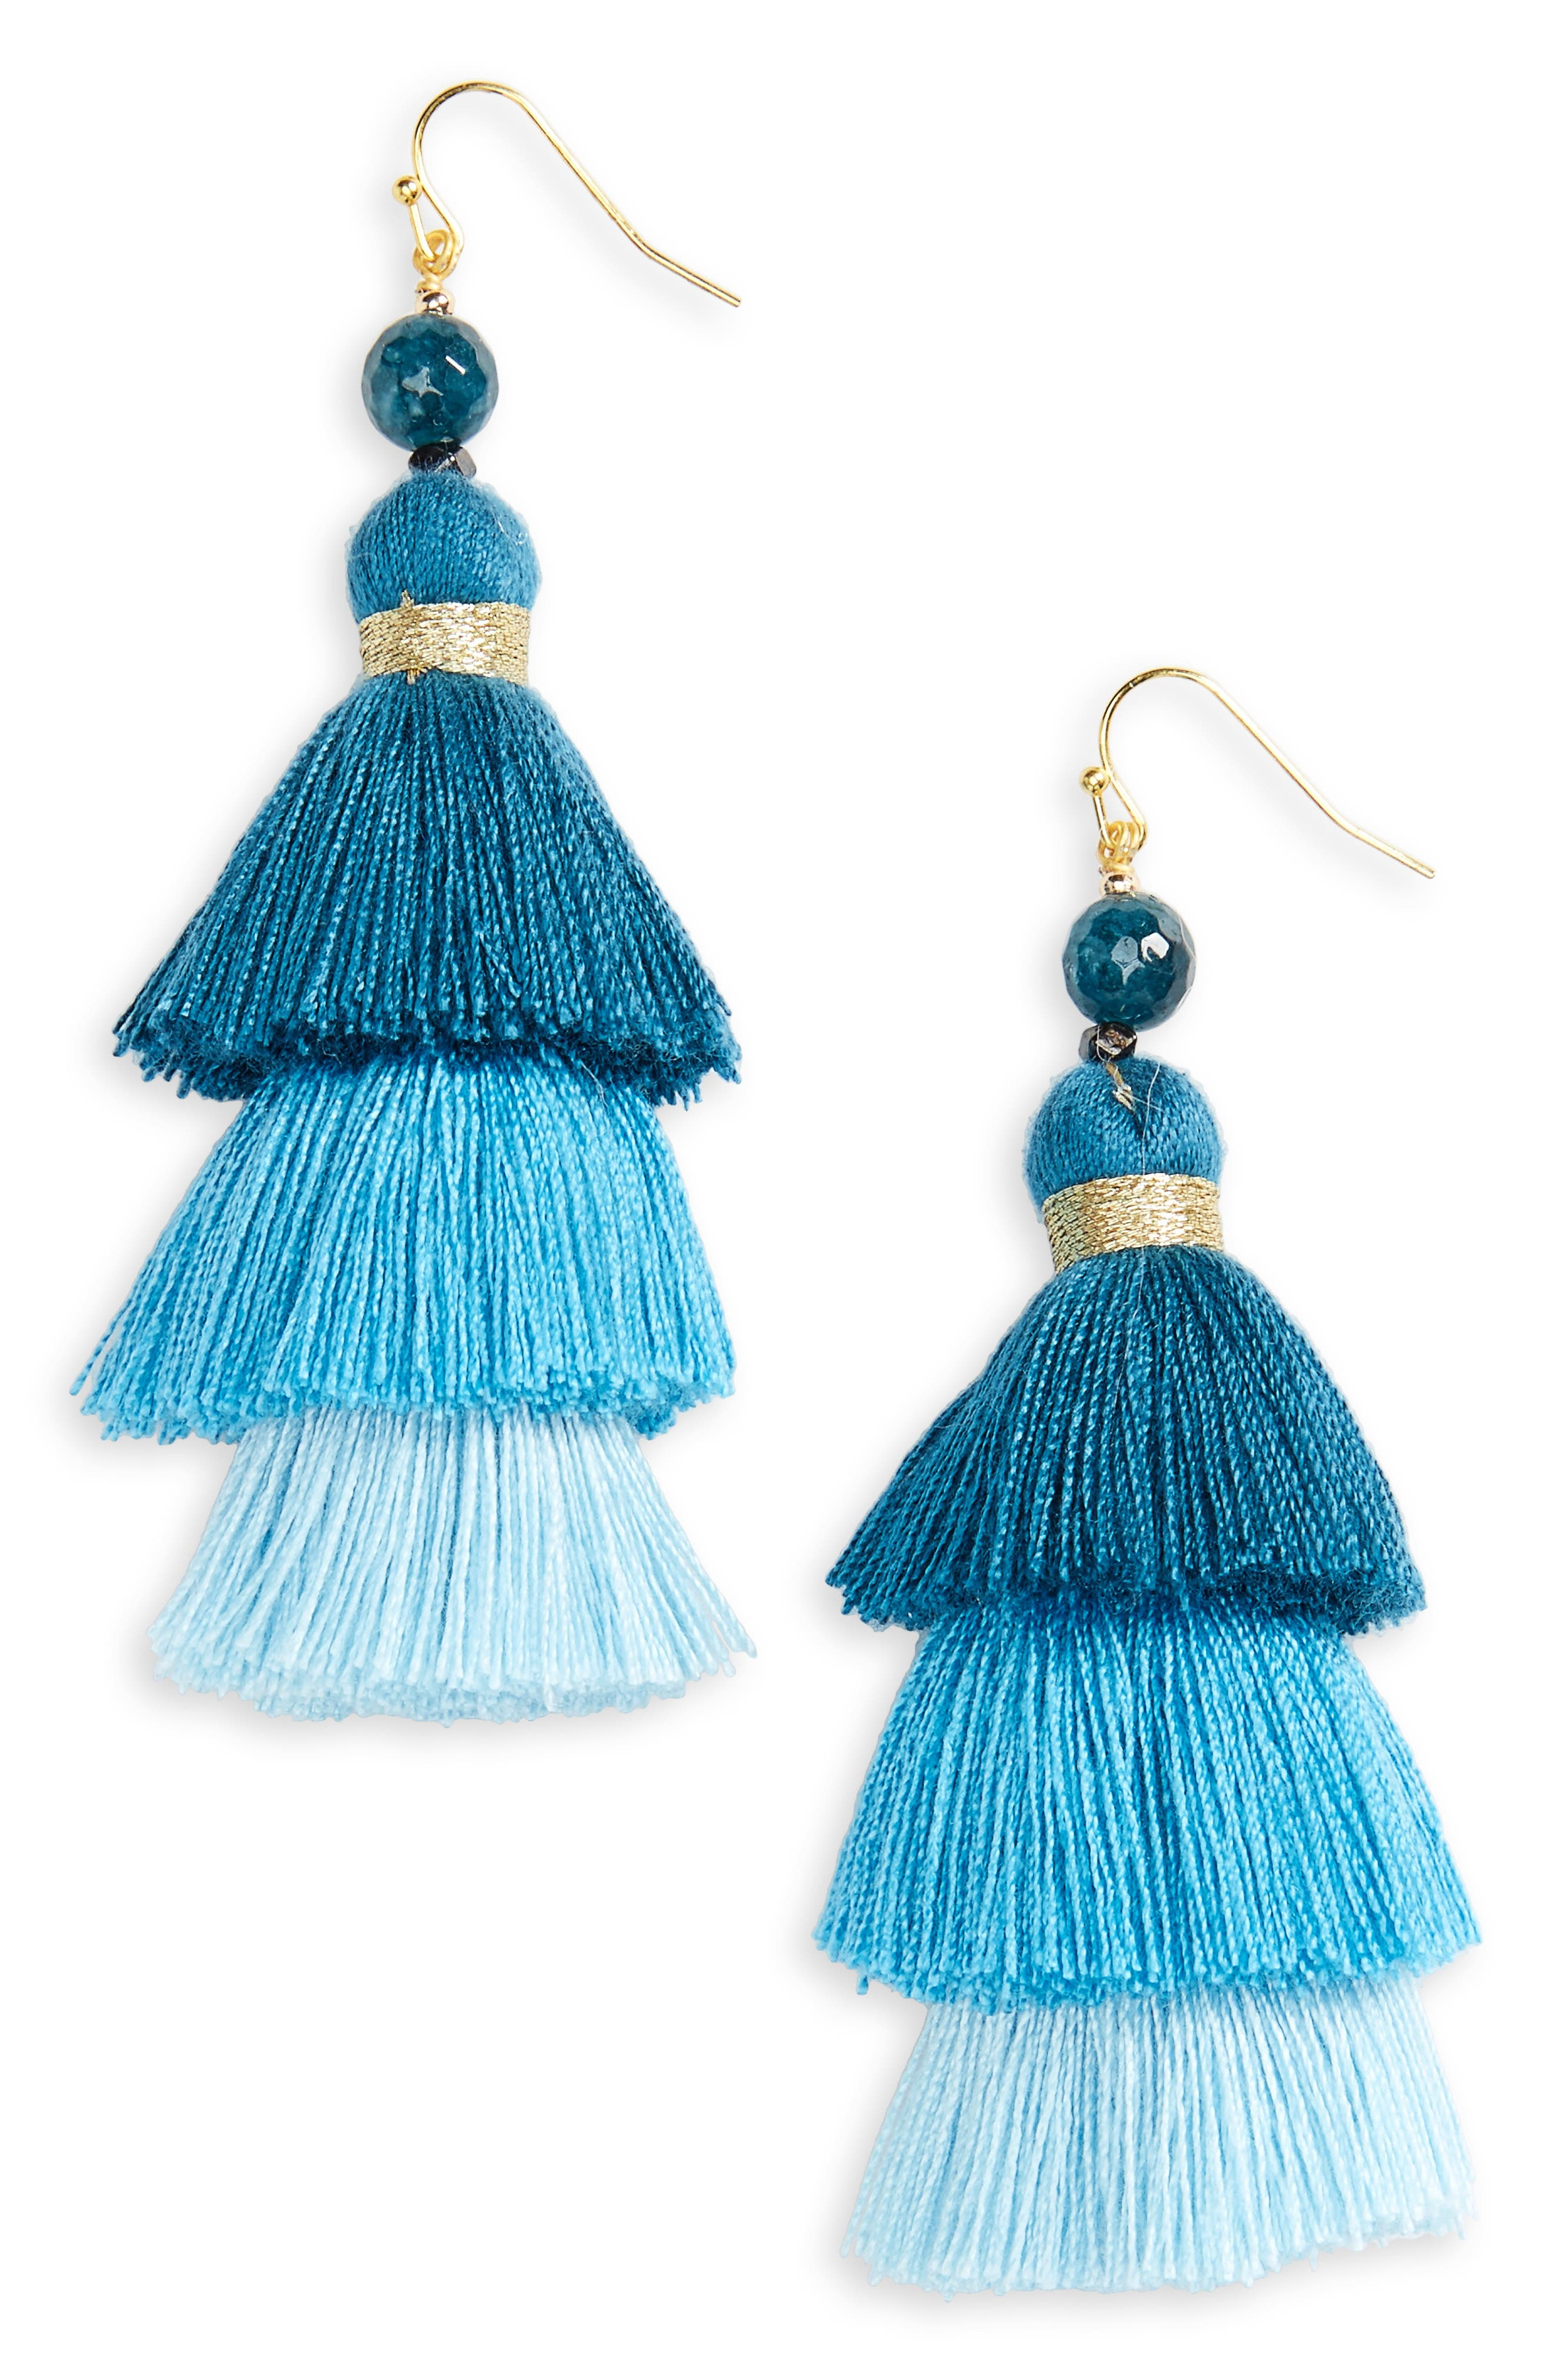 NAKAMOL DESIGN, Layered Tassel Statement Earrings, Main thumbnail 1, color, 400